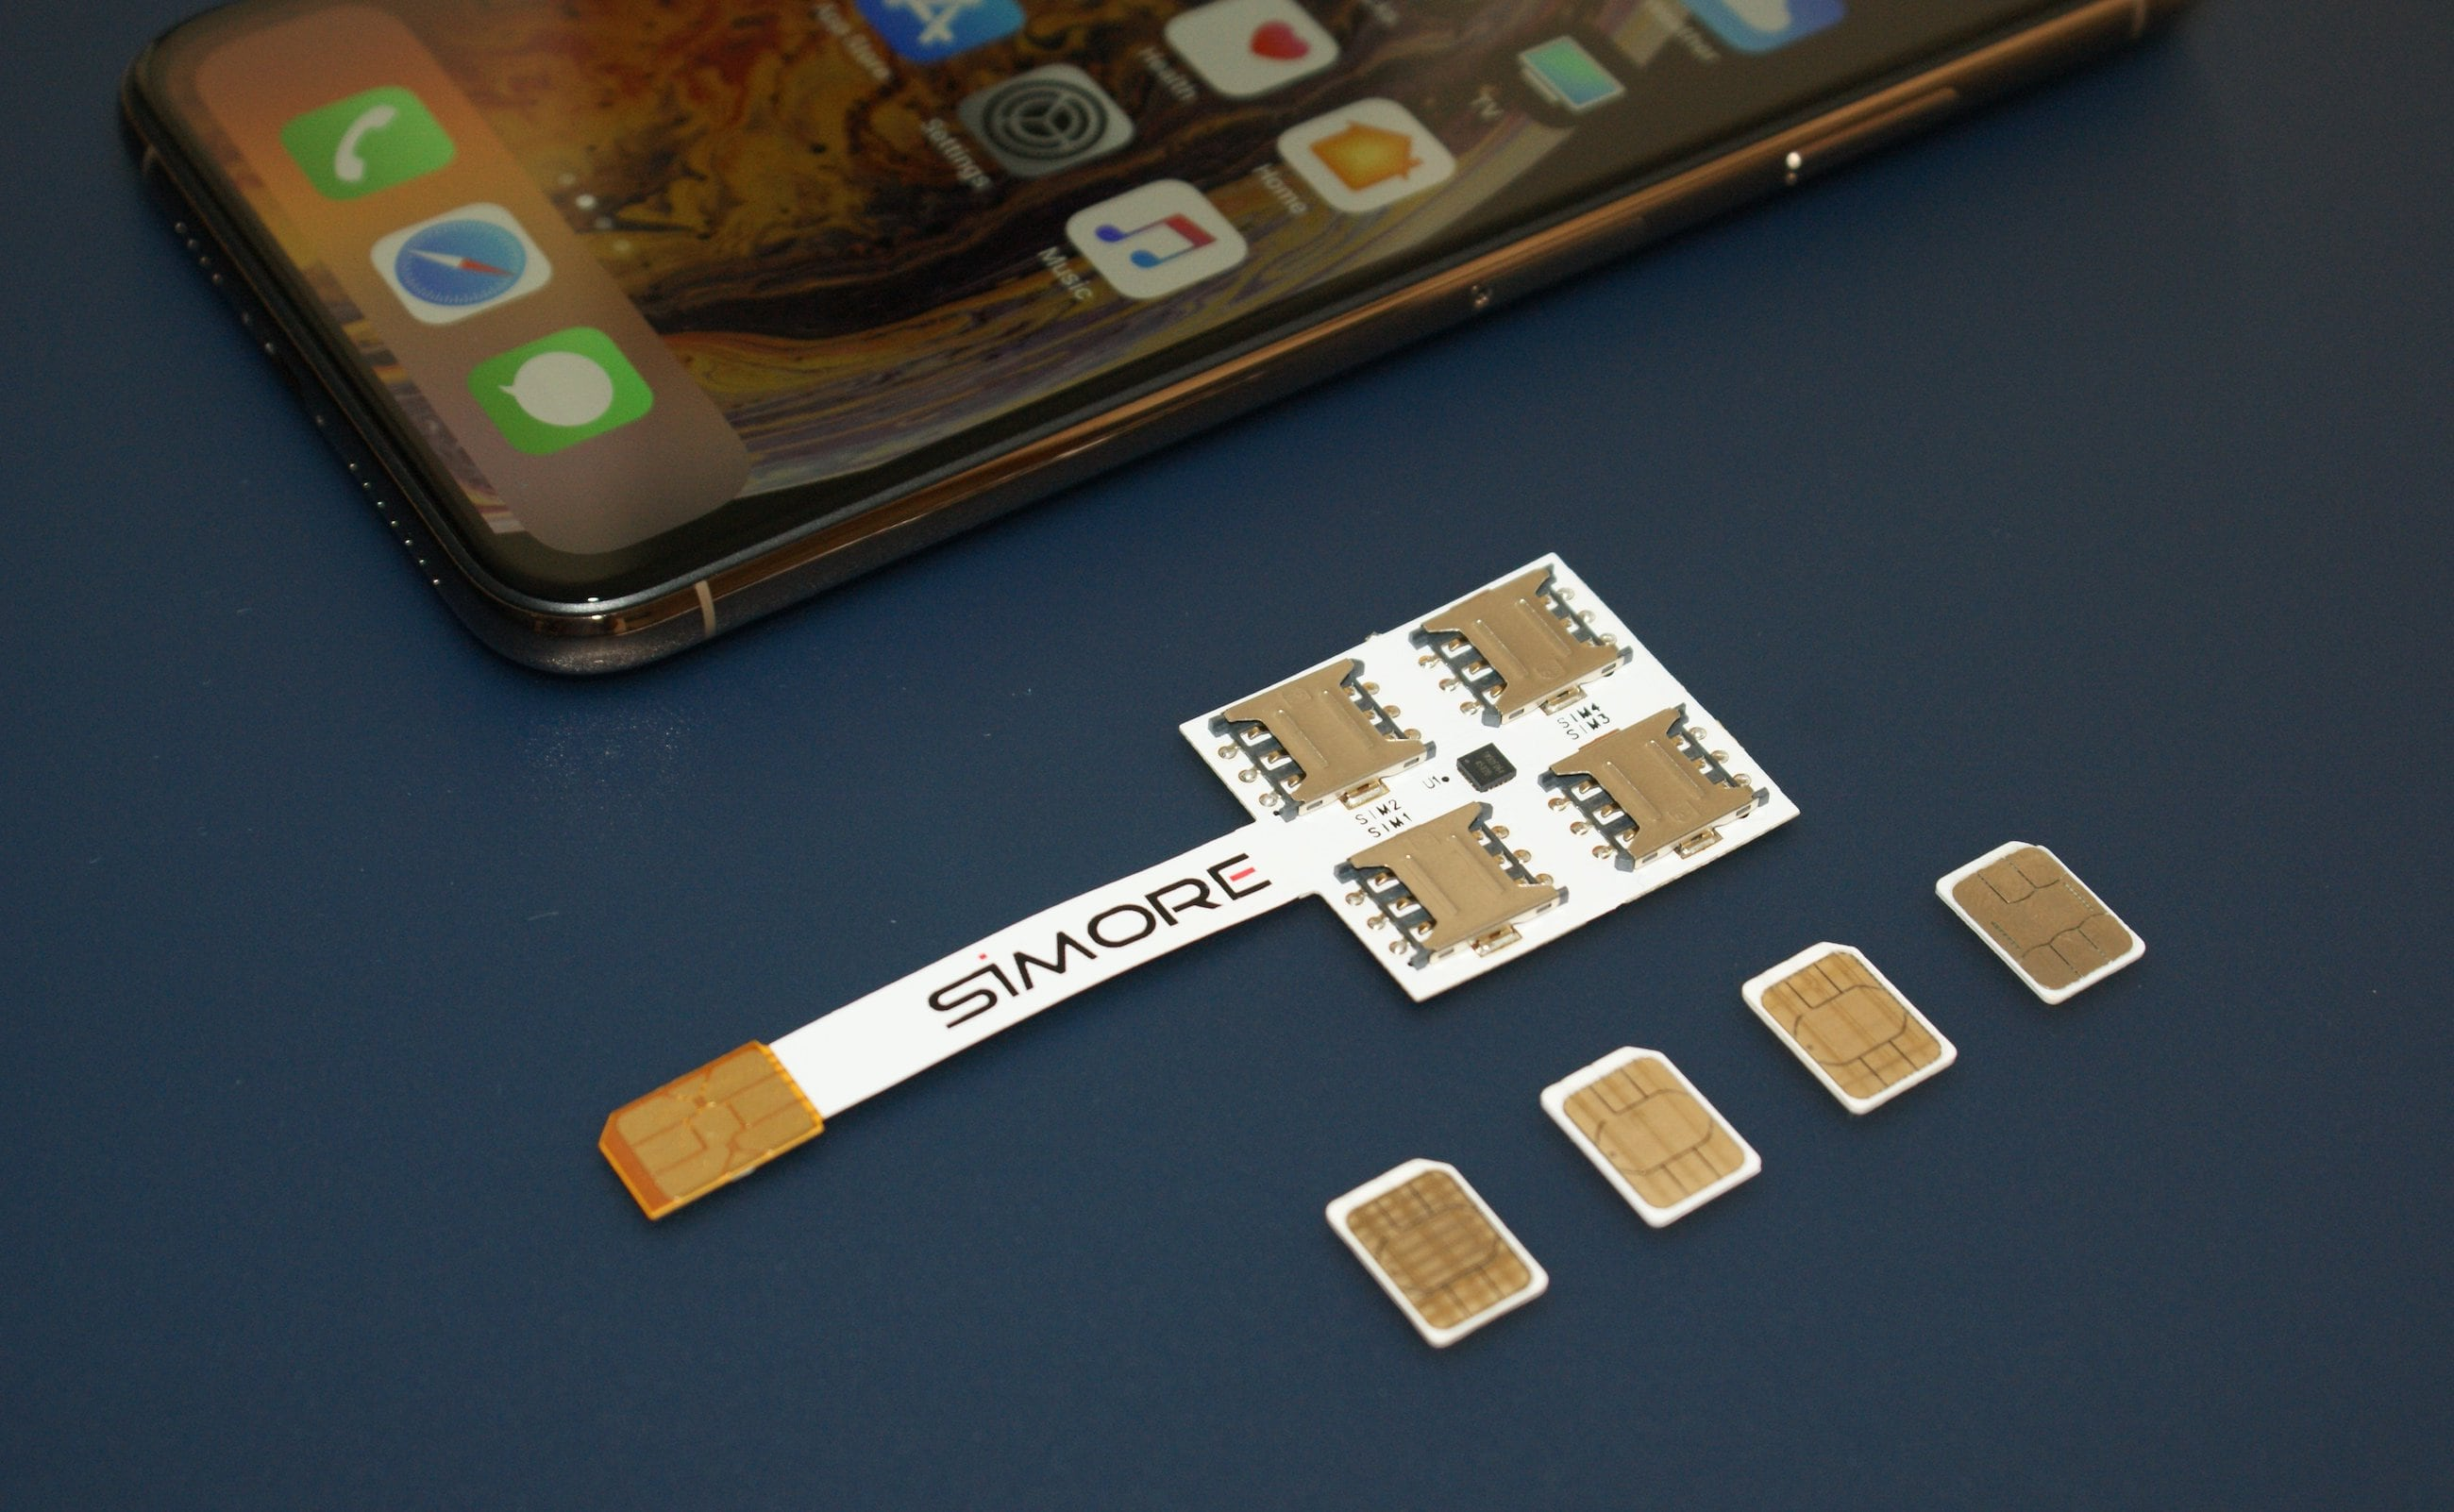 SIMore Speed X-Four iPhone Multi-SIM Adapter Case gives you access to four numbers